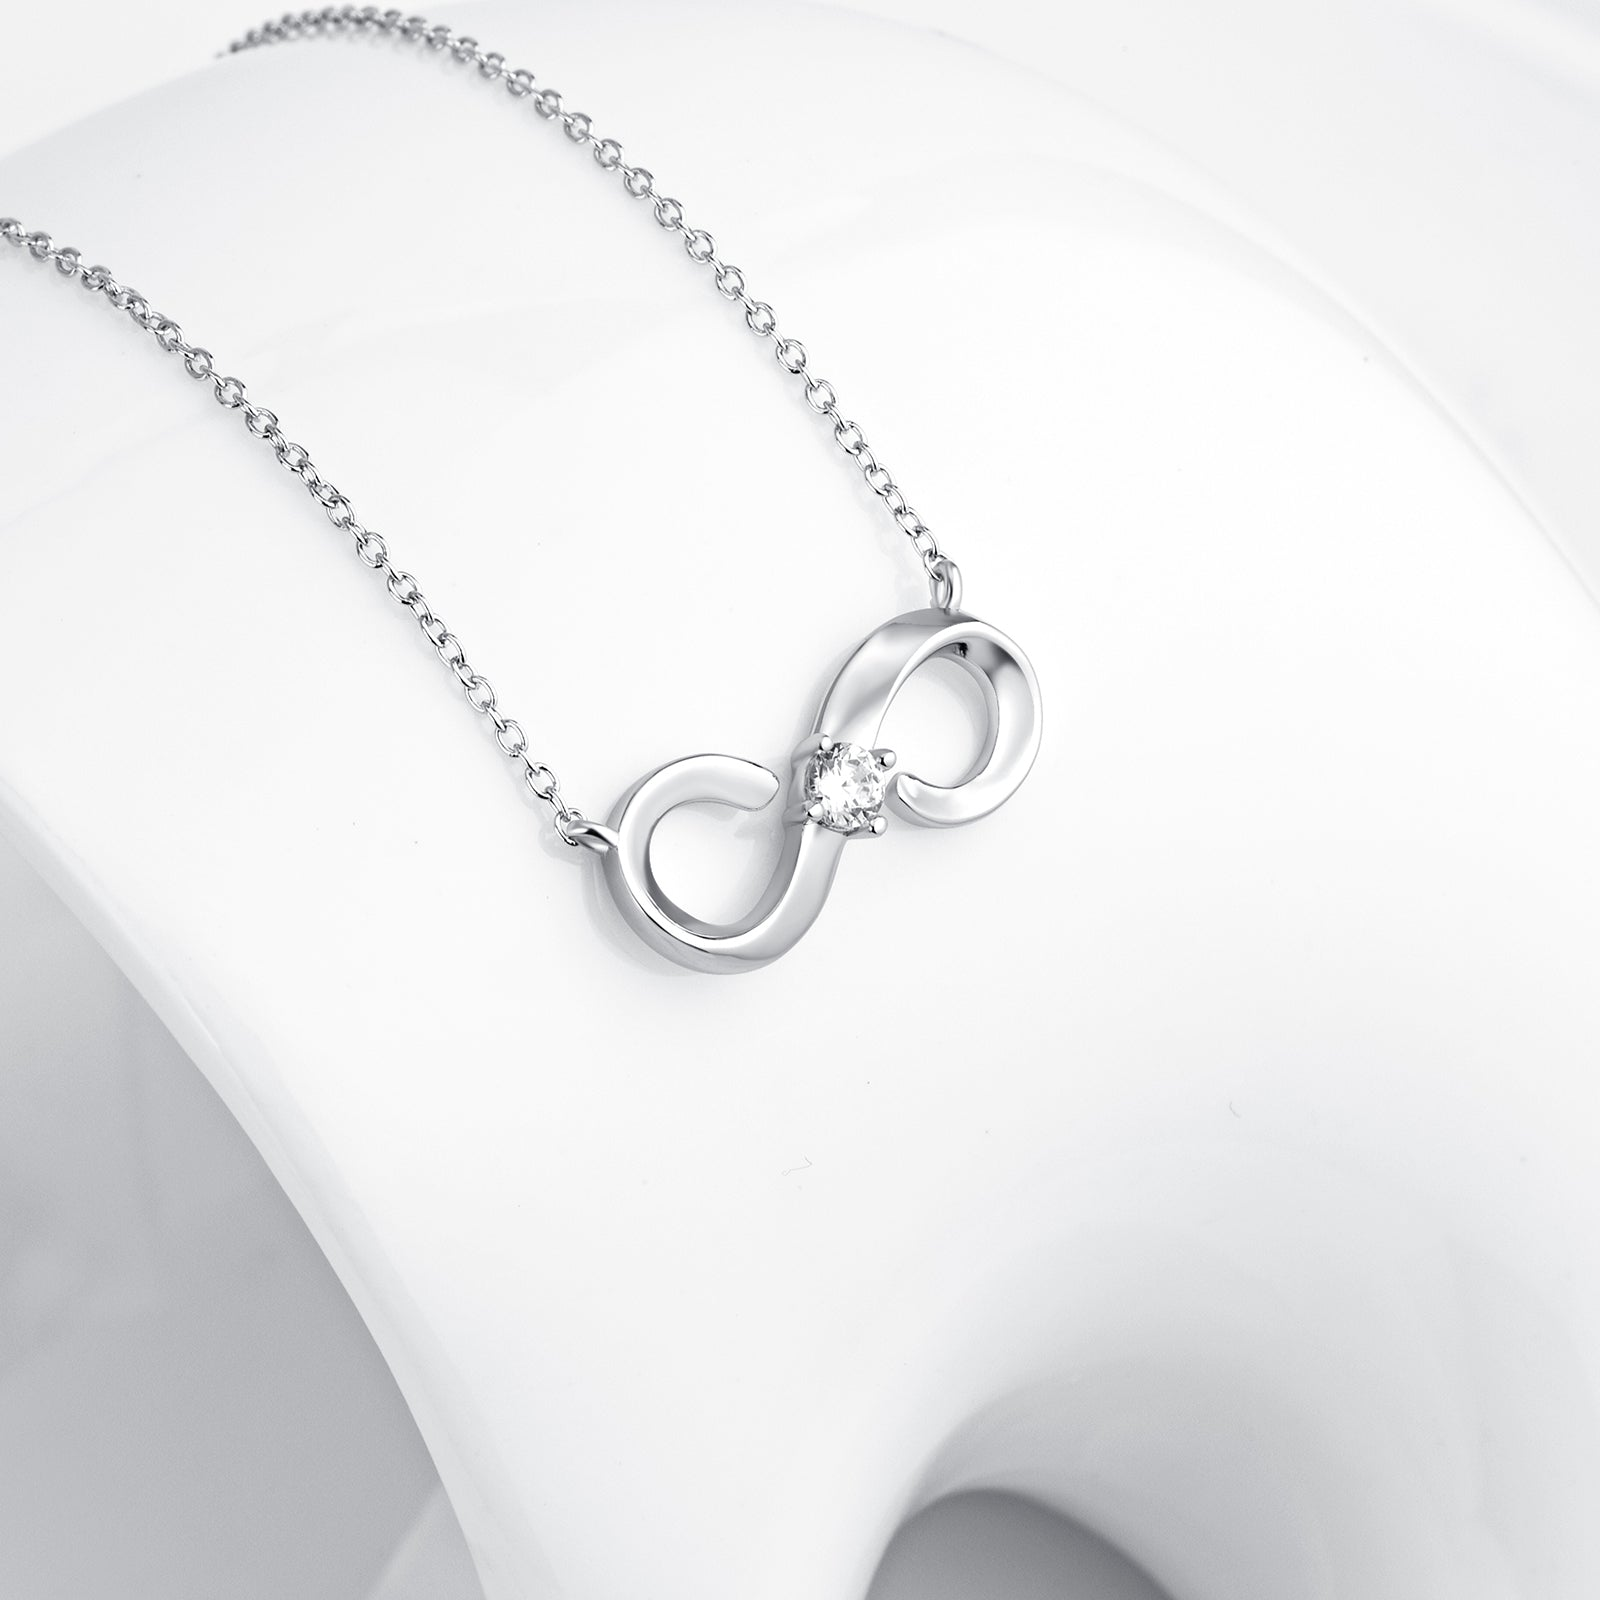 Cable Chain Knot Necklace Zirconia Best Quality Eight Number Necklace